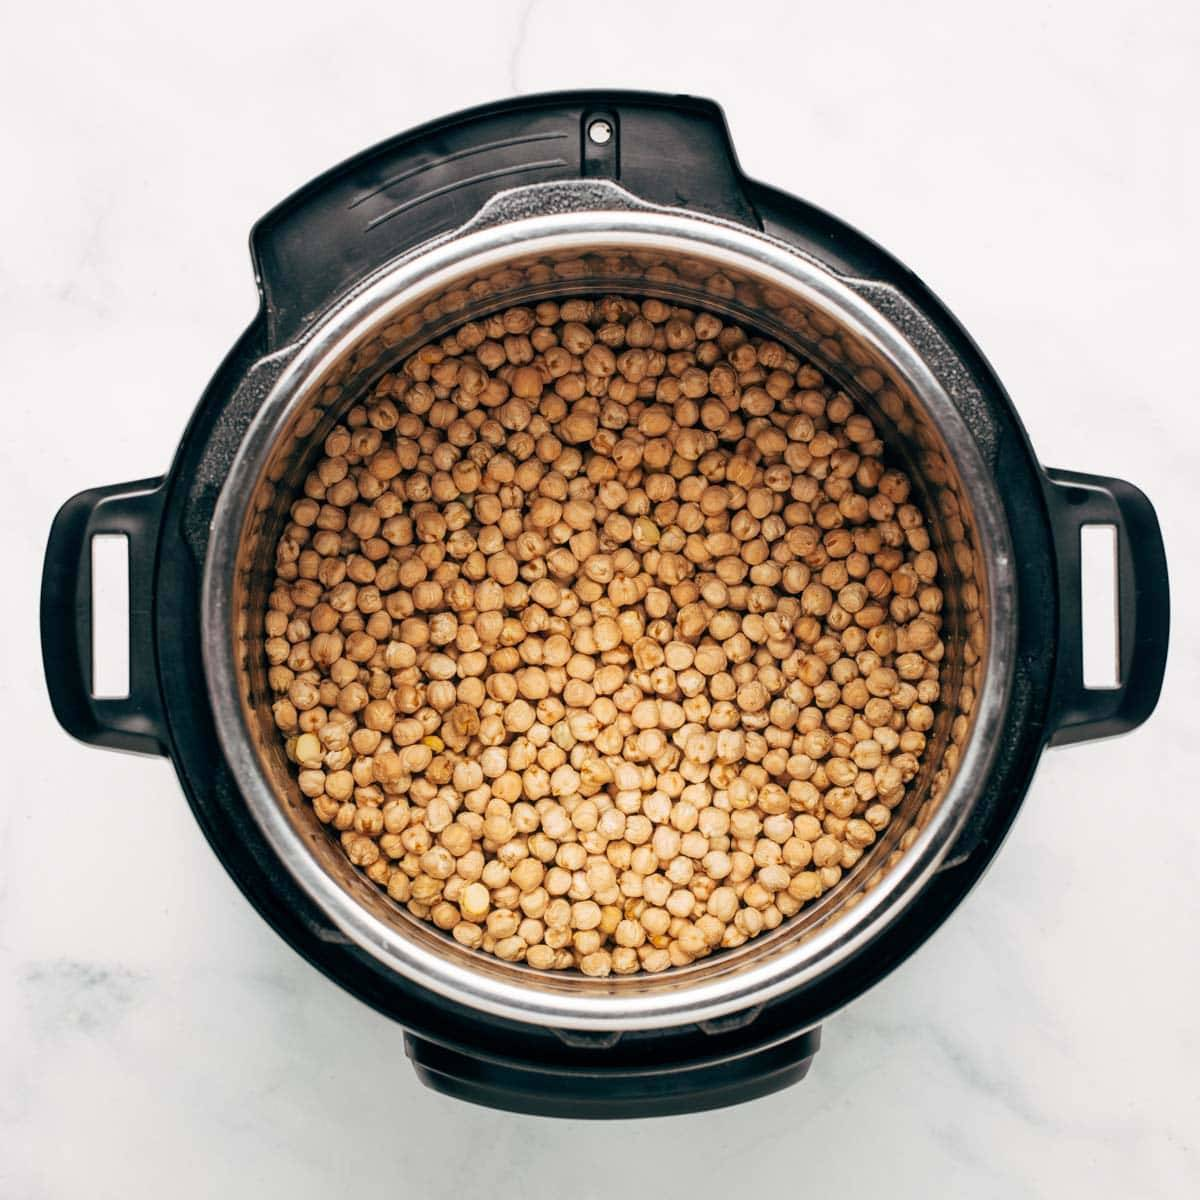 Chickpeas in the Instant Pot.